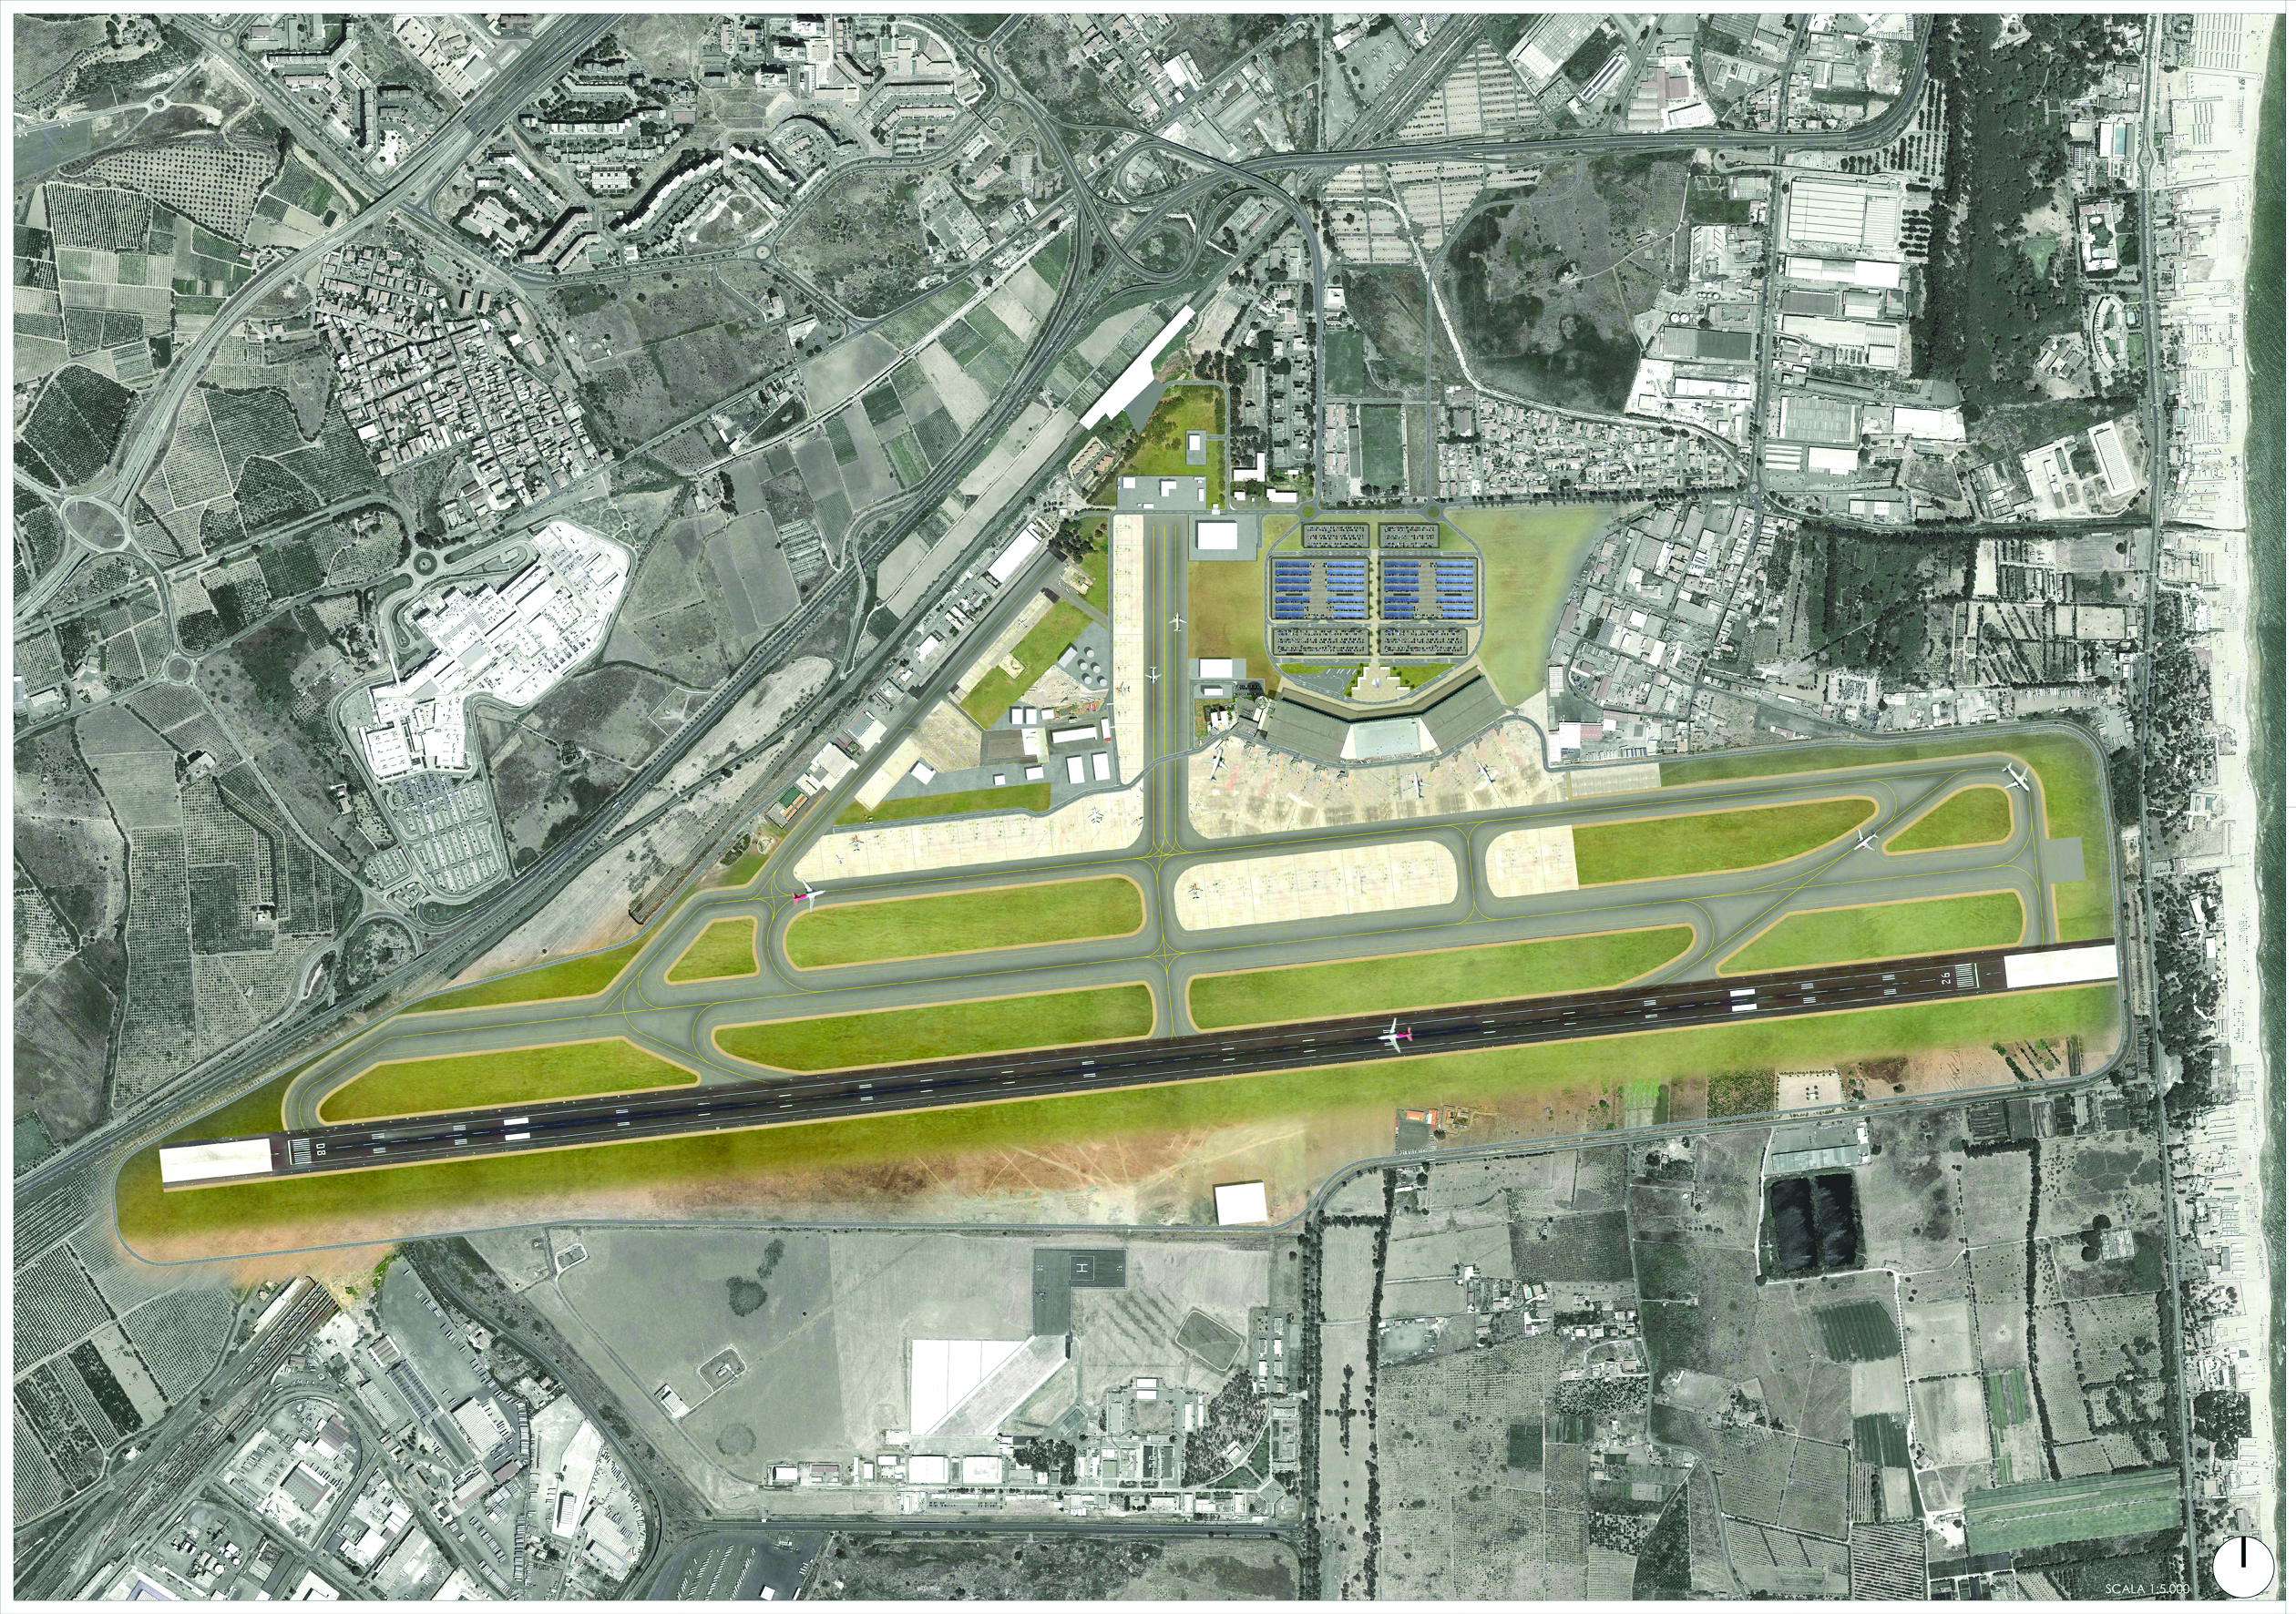 Systematica-Catania Airport-Airport Master Plan